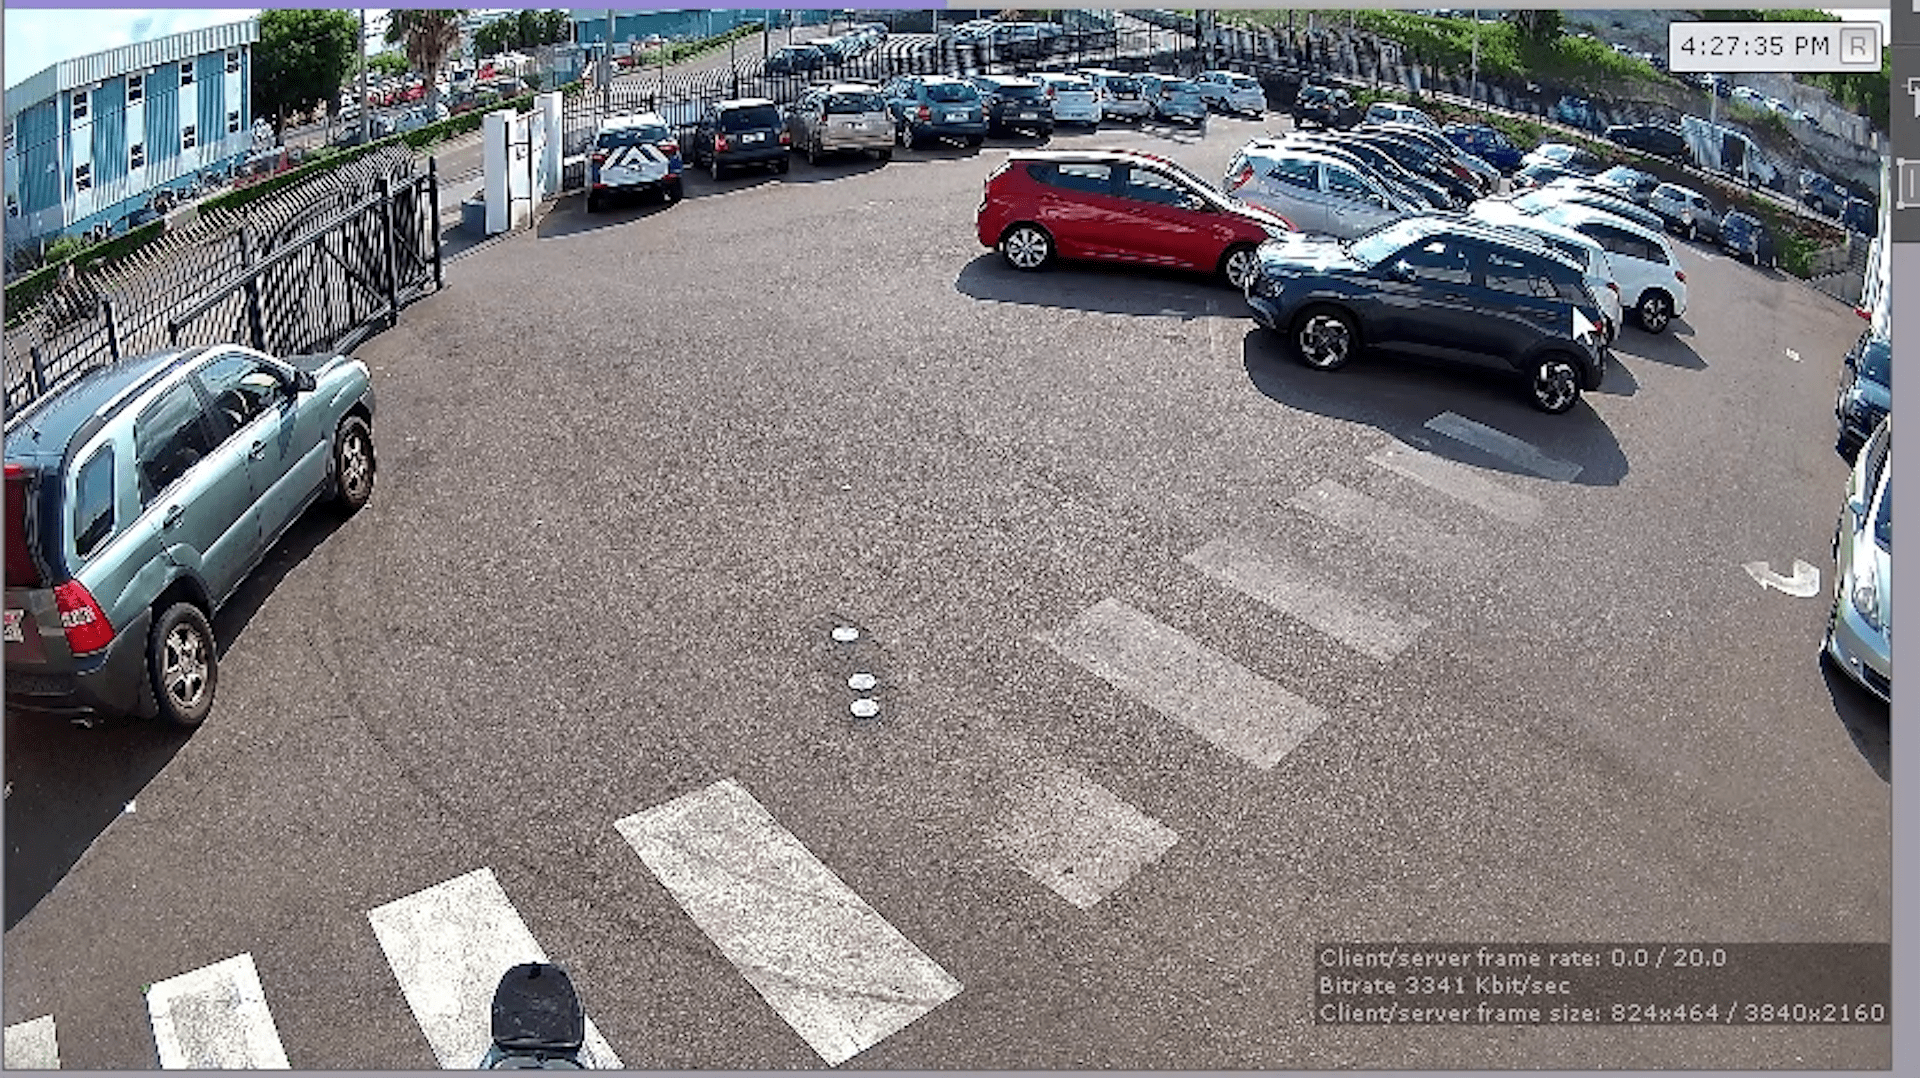 Auto Solutions Upgrade CCTV at St. John's Road with Arkiv Video Management Software 3